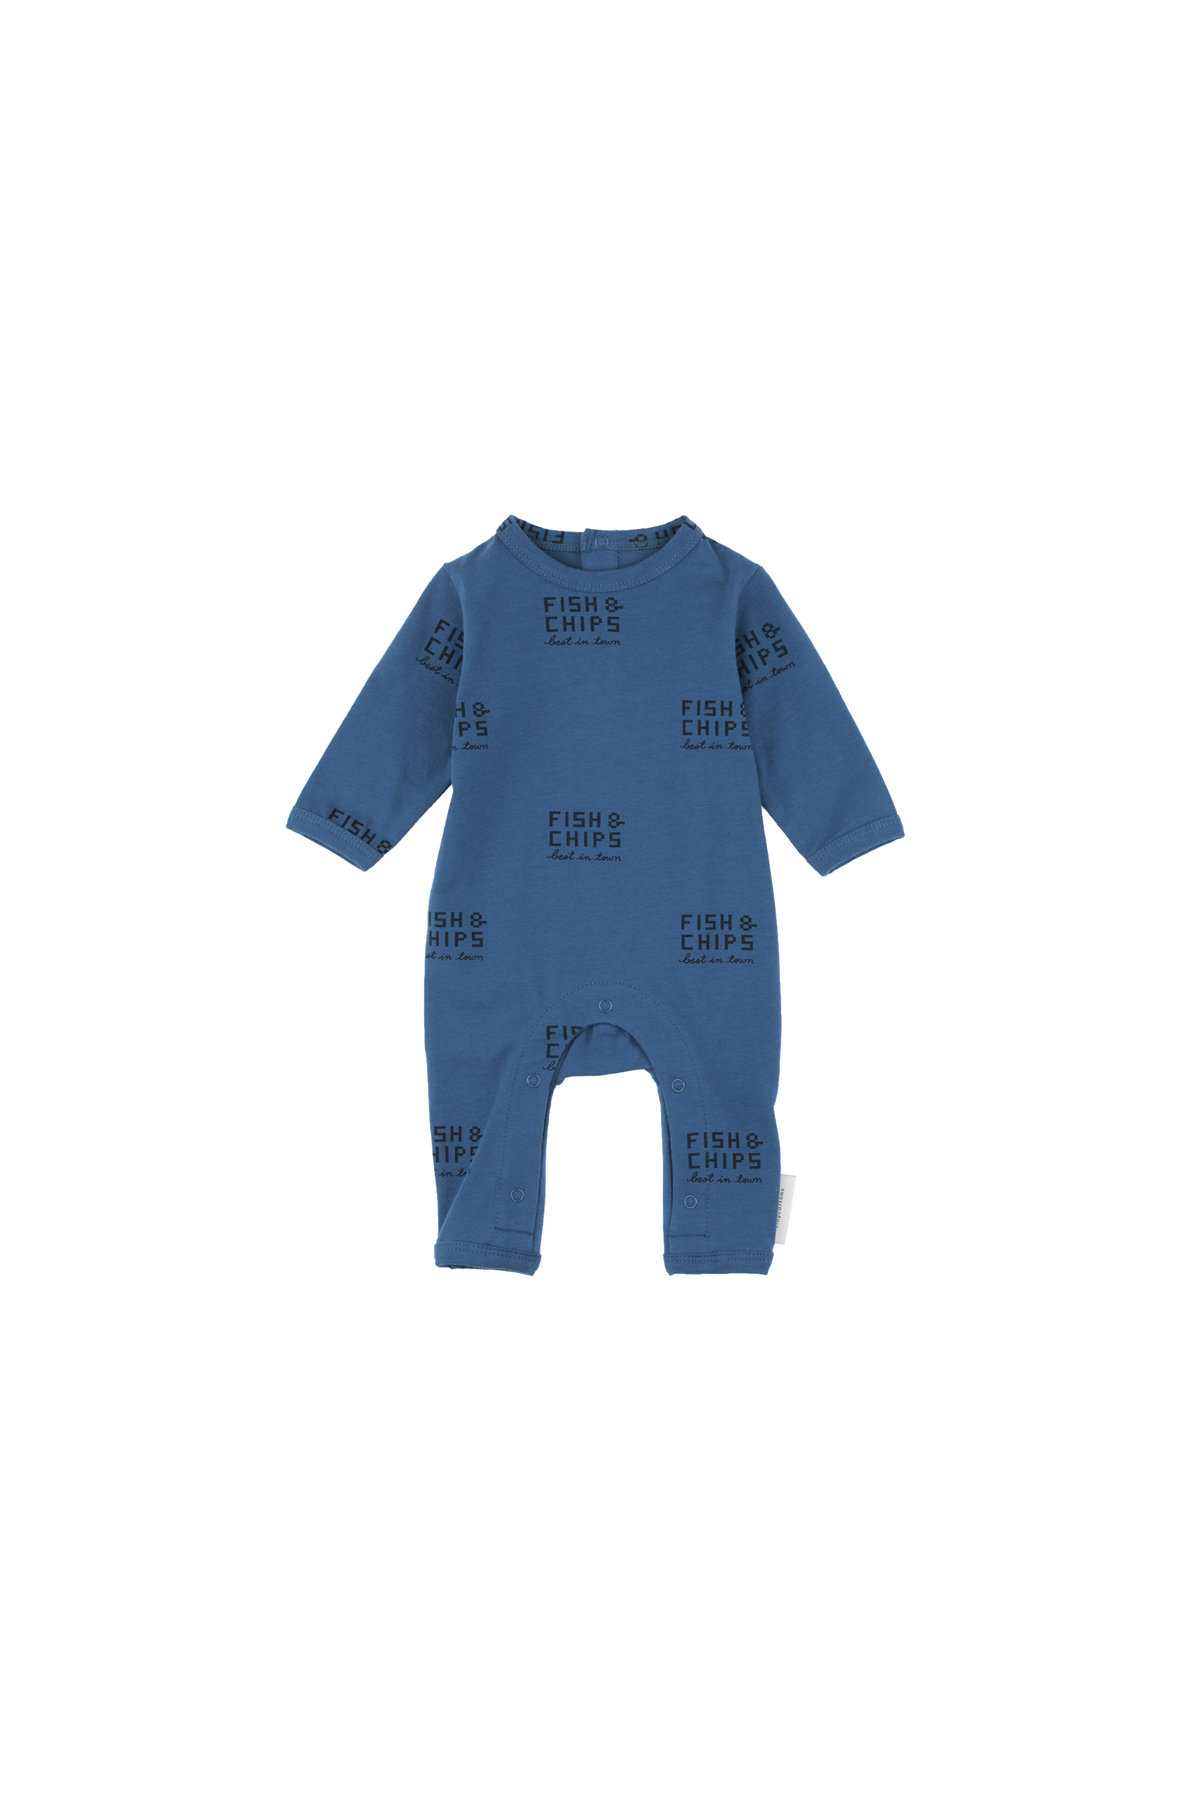 《tinycottons 2018AW》fish and chips ls one-piece / light navy × navy / 6-12M